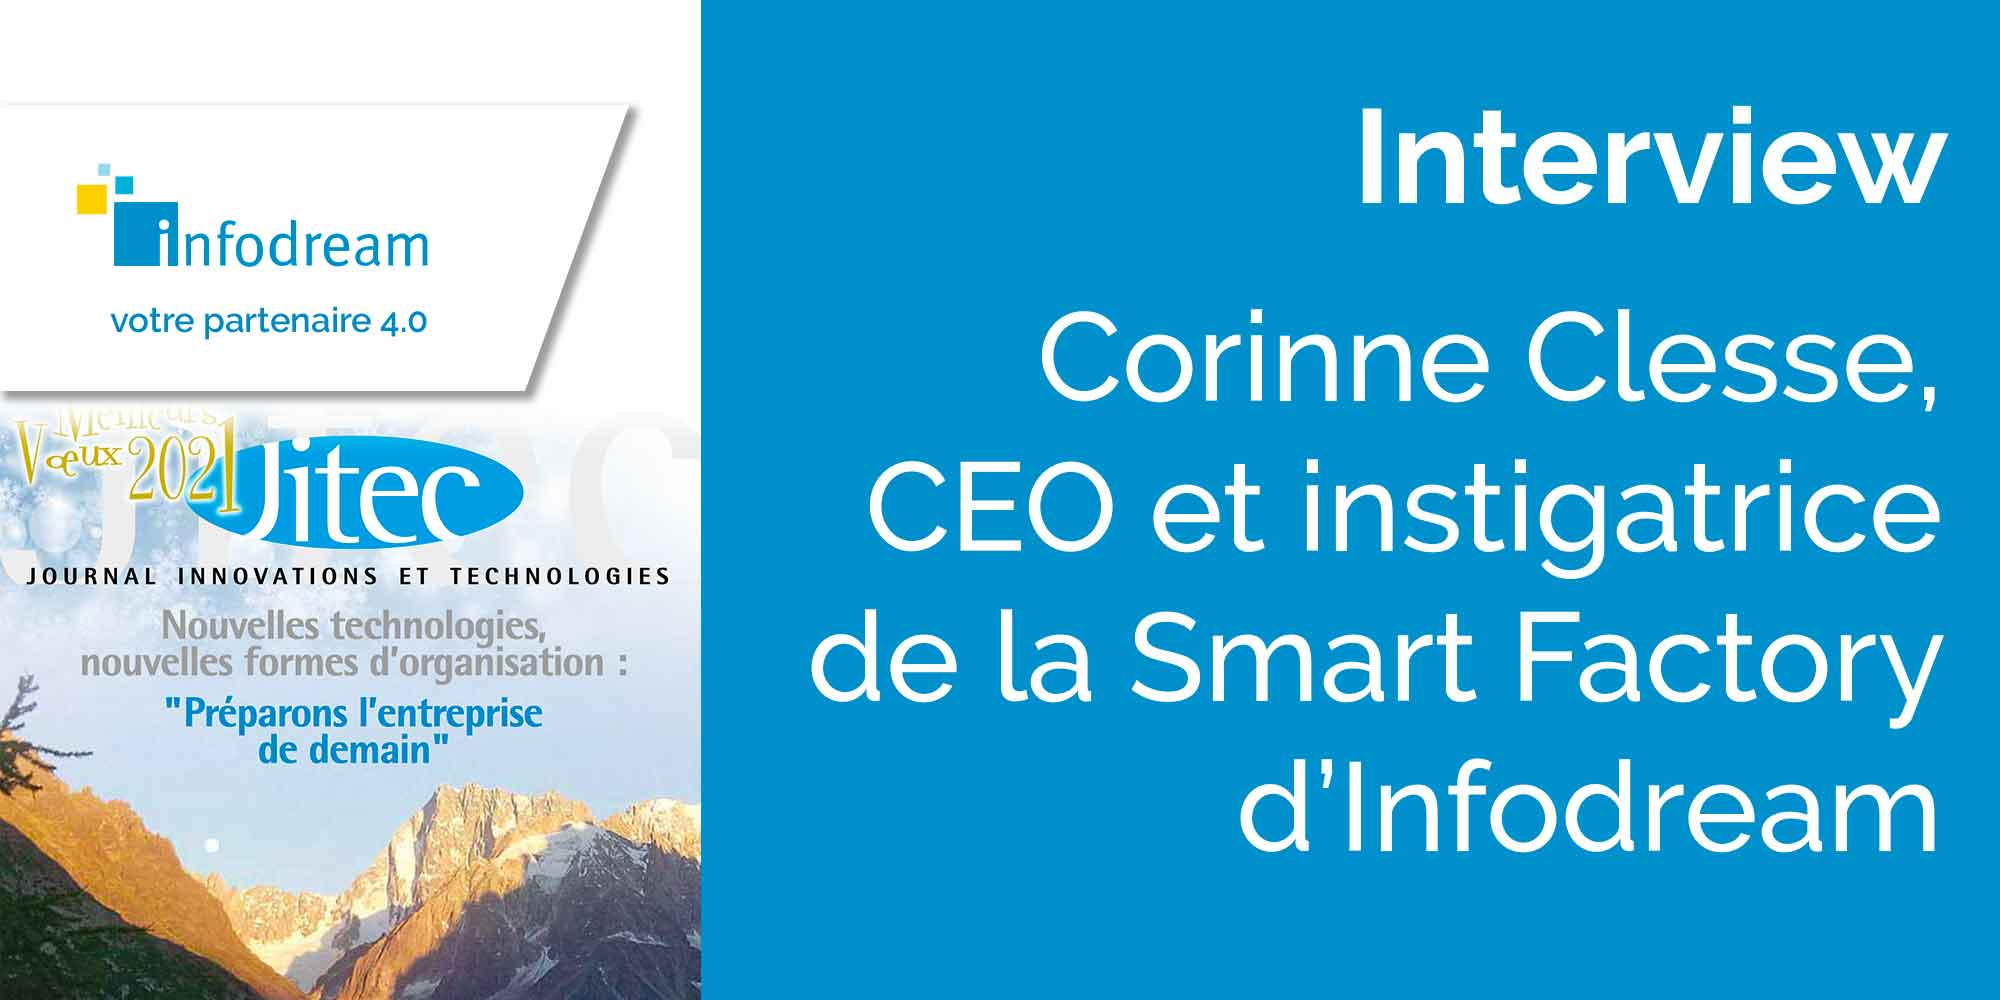 Interview De Corinne Clesse, CEO D'Infodream